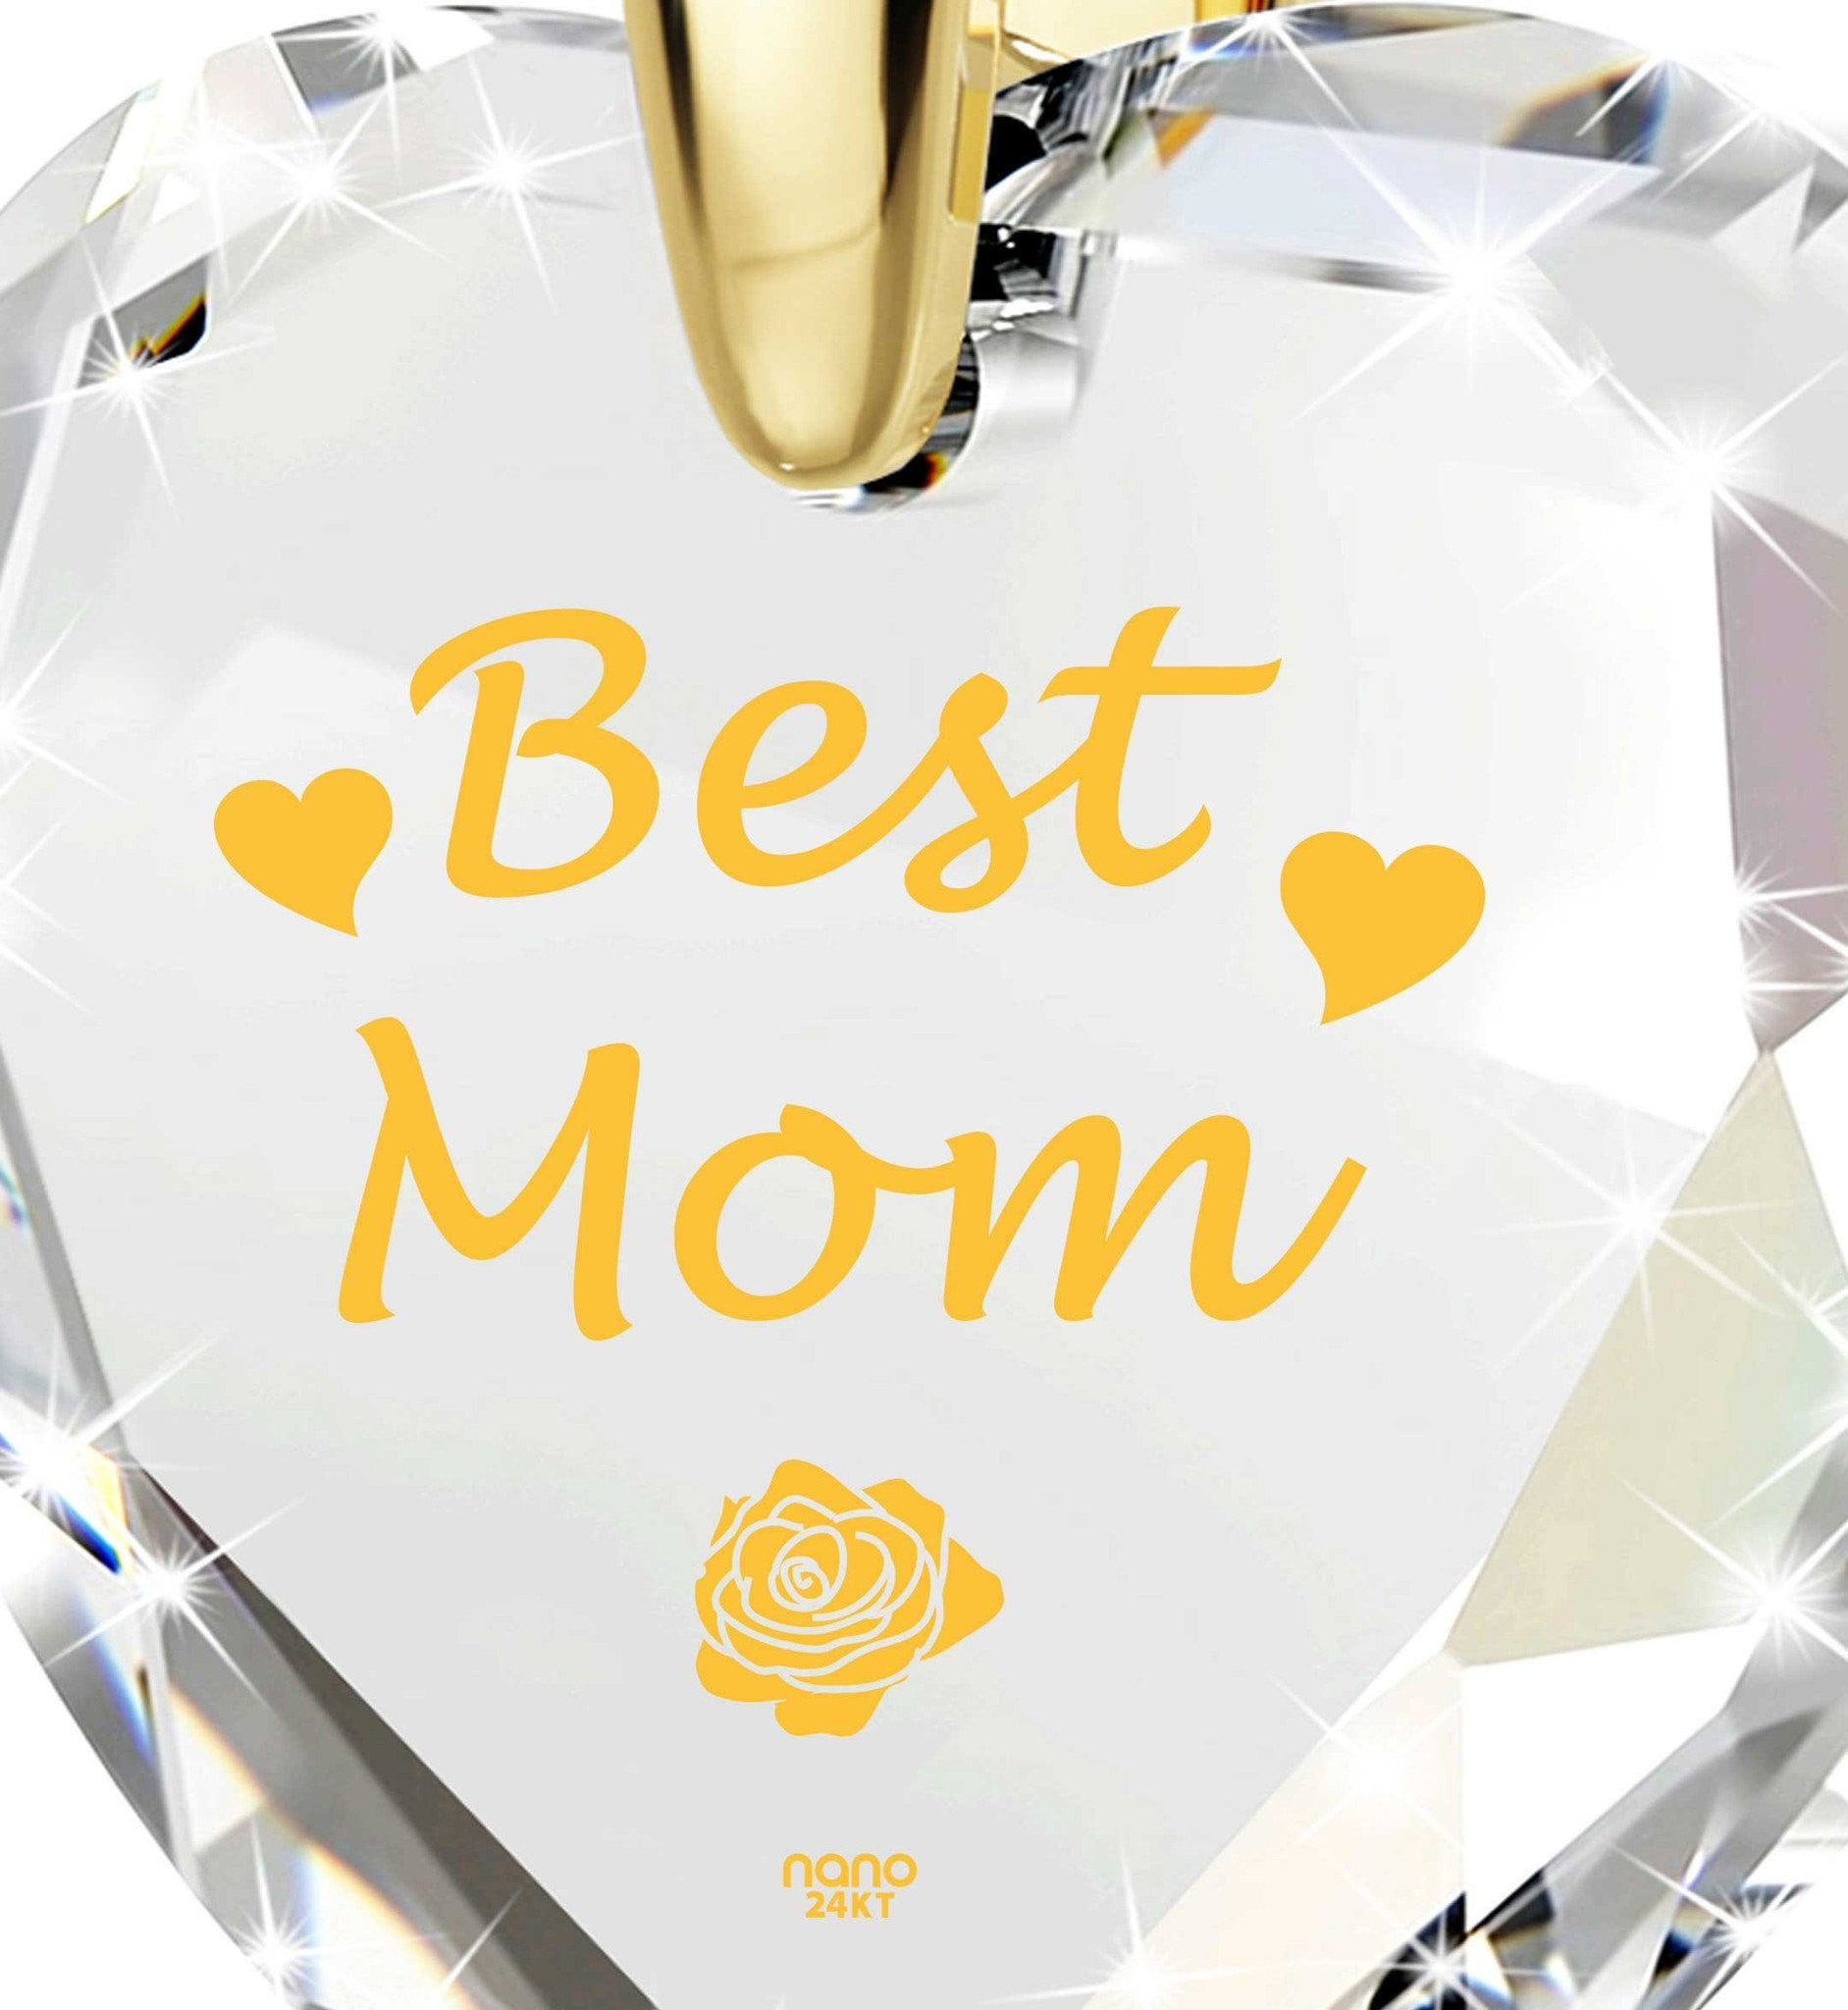 Good Christmas Presents for Mom, Gold Filled Pendant, Mother Daughter Necklace, by Nano Jewelry